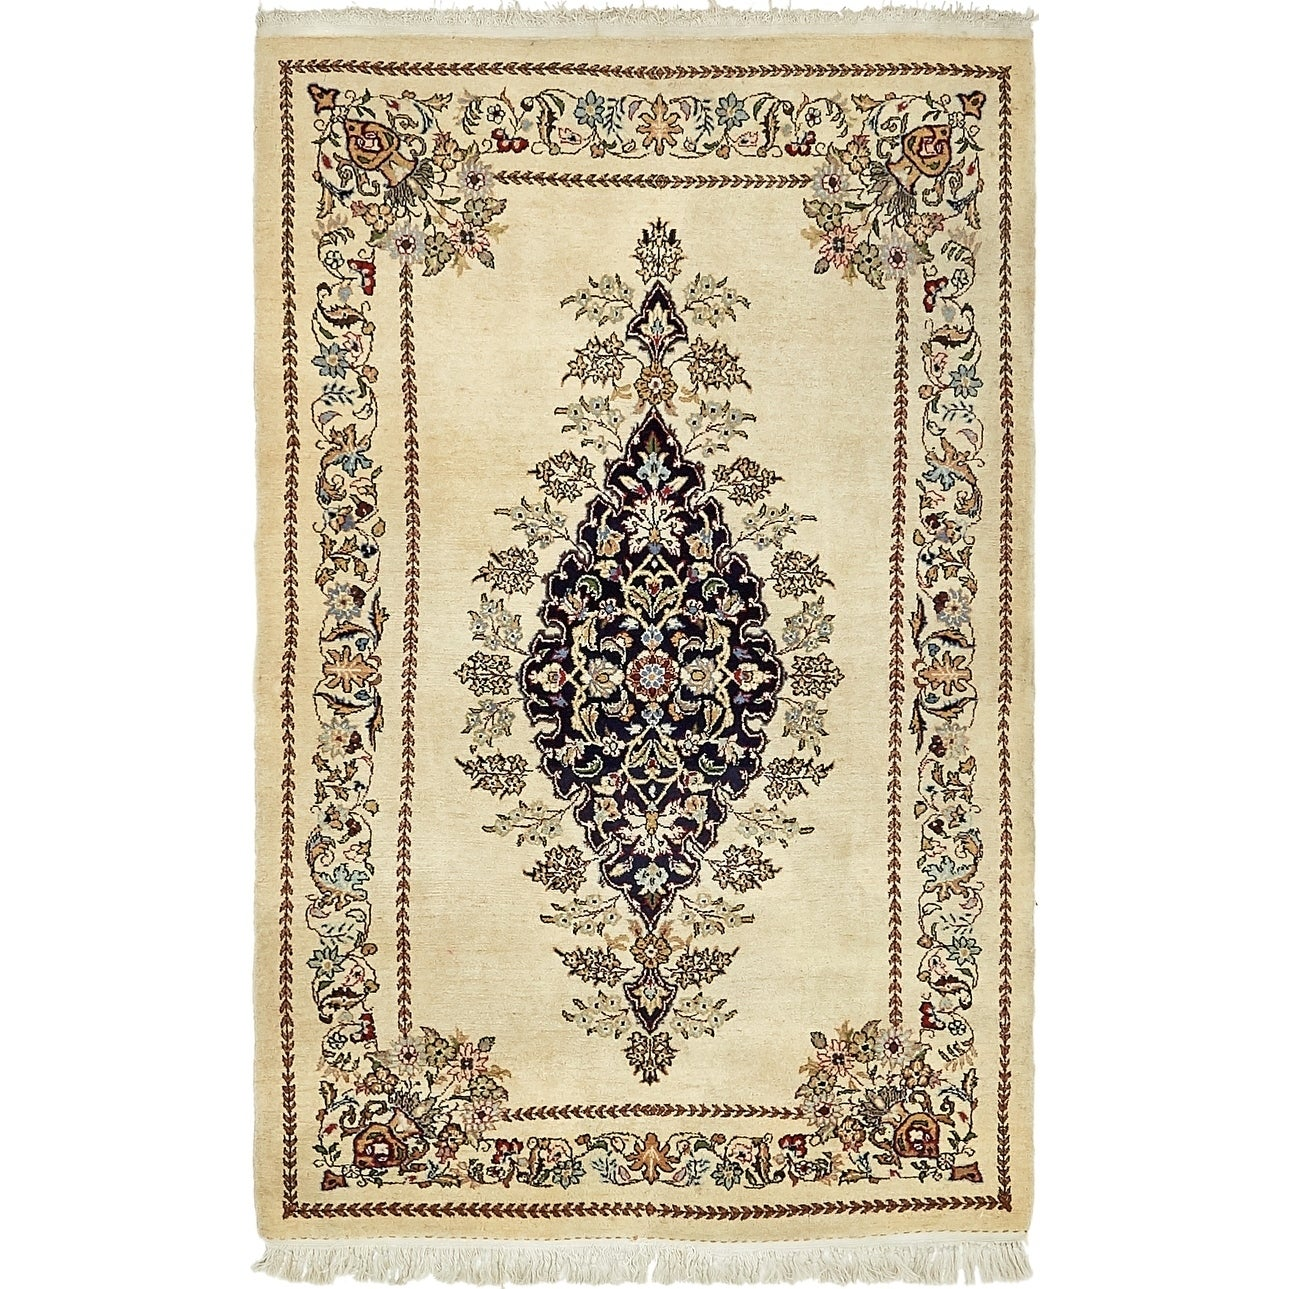 Hand Knotted Kashan Wool Area Rug - 3' 4 x 5' 5 (Cream - 3' 4 x 5' 5)